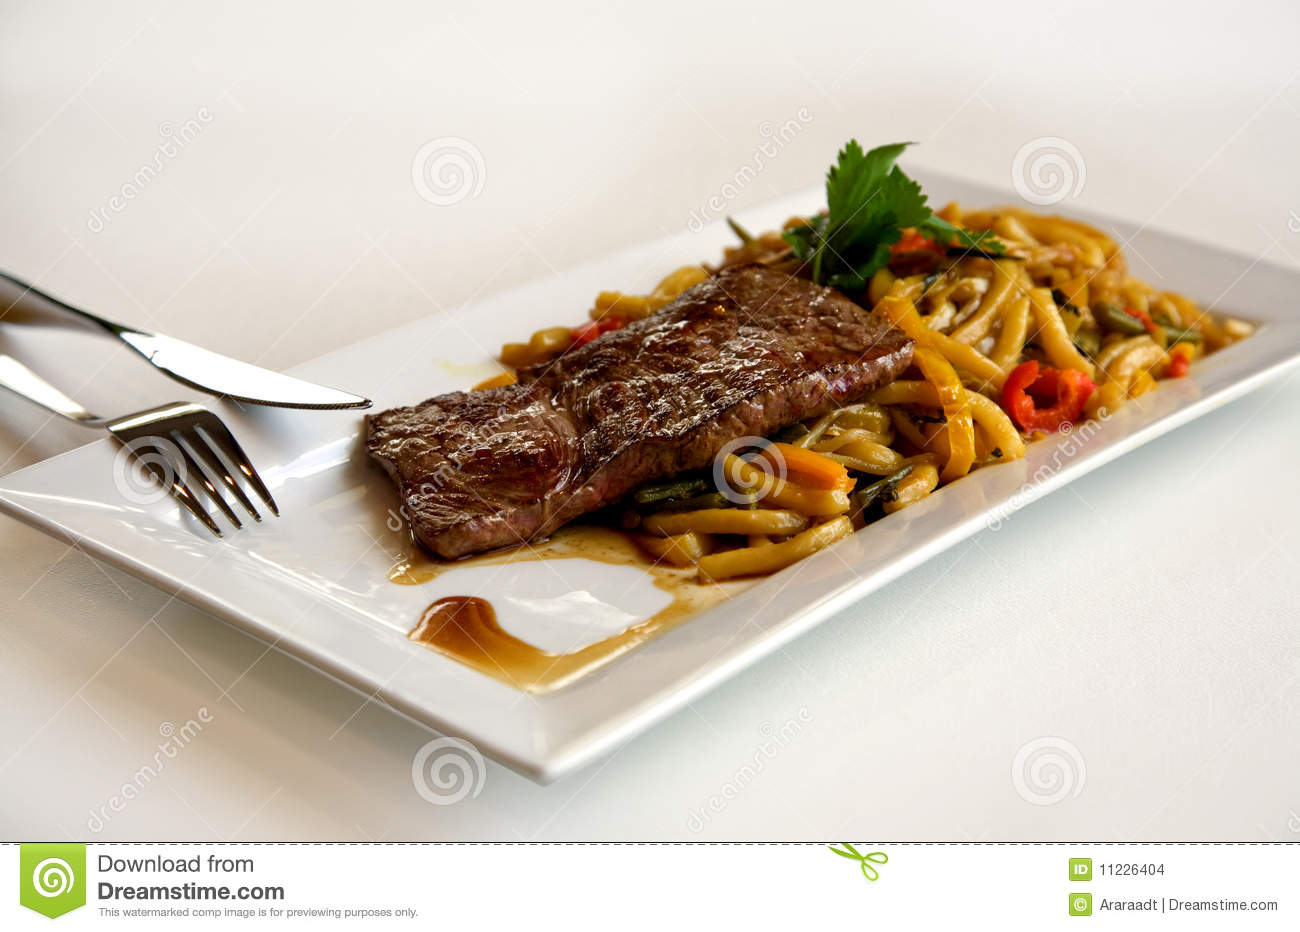 Steak on plate stock photo. Image of meat, fork, baked ...